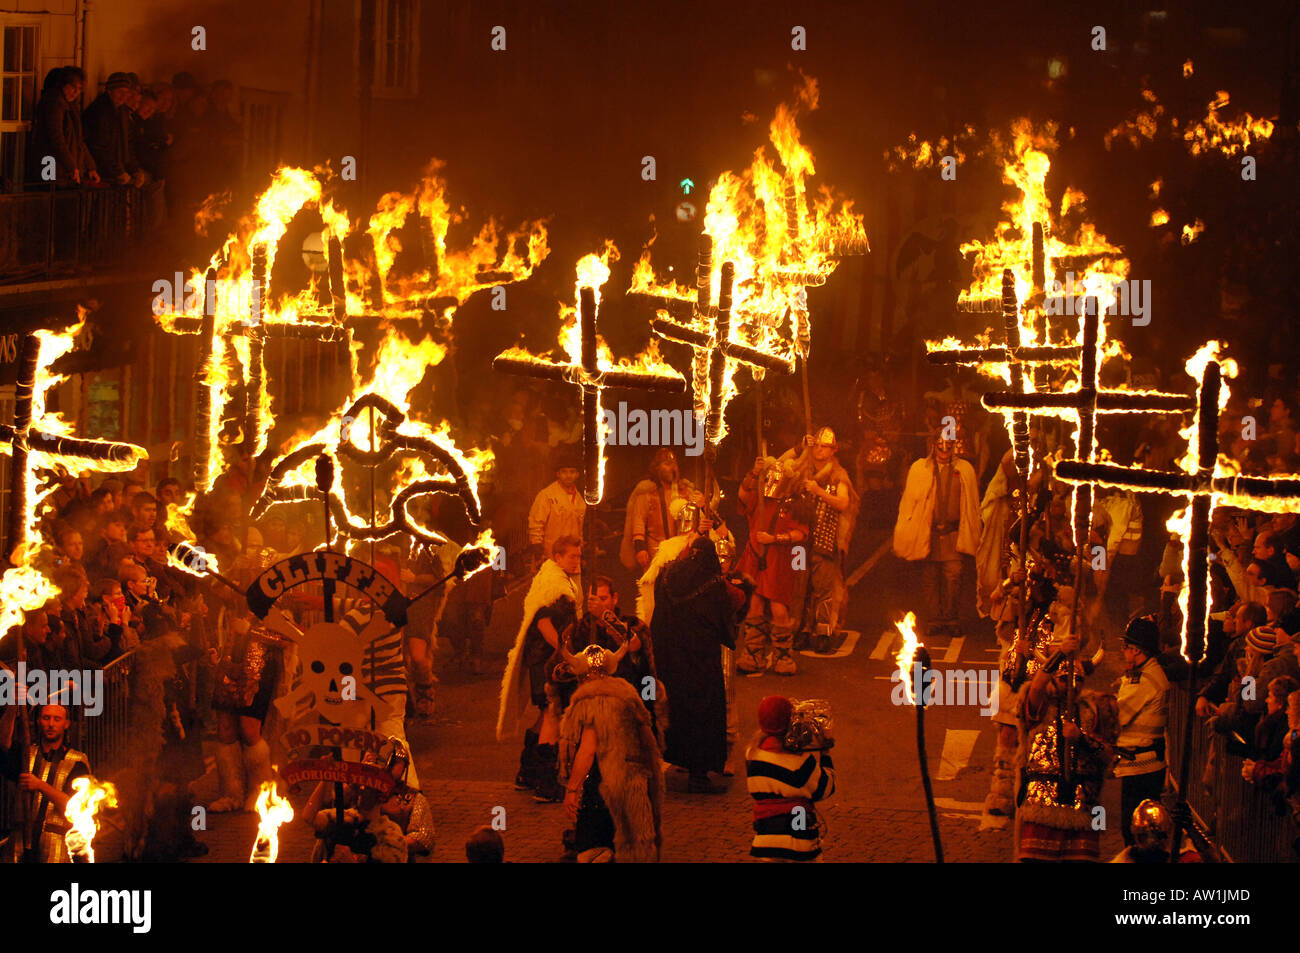 Burning crosses form part of a breathtaking parade of fire and fireworks on bonfire night in Lewes, England. - Stock Image